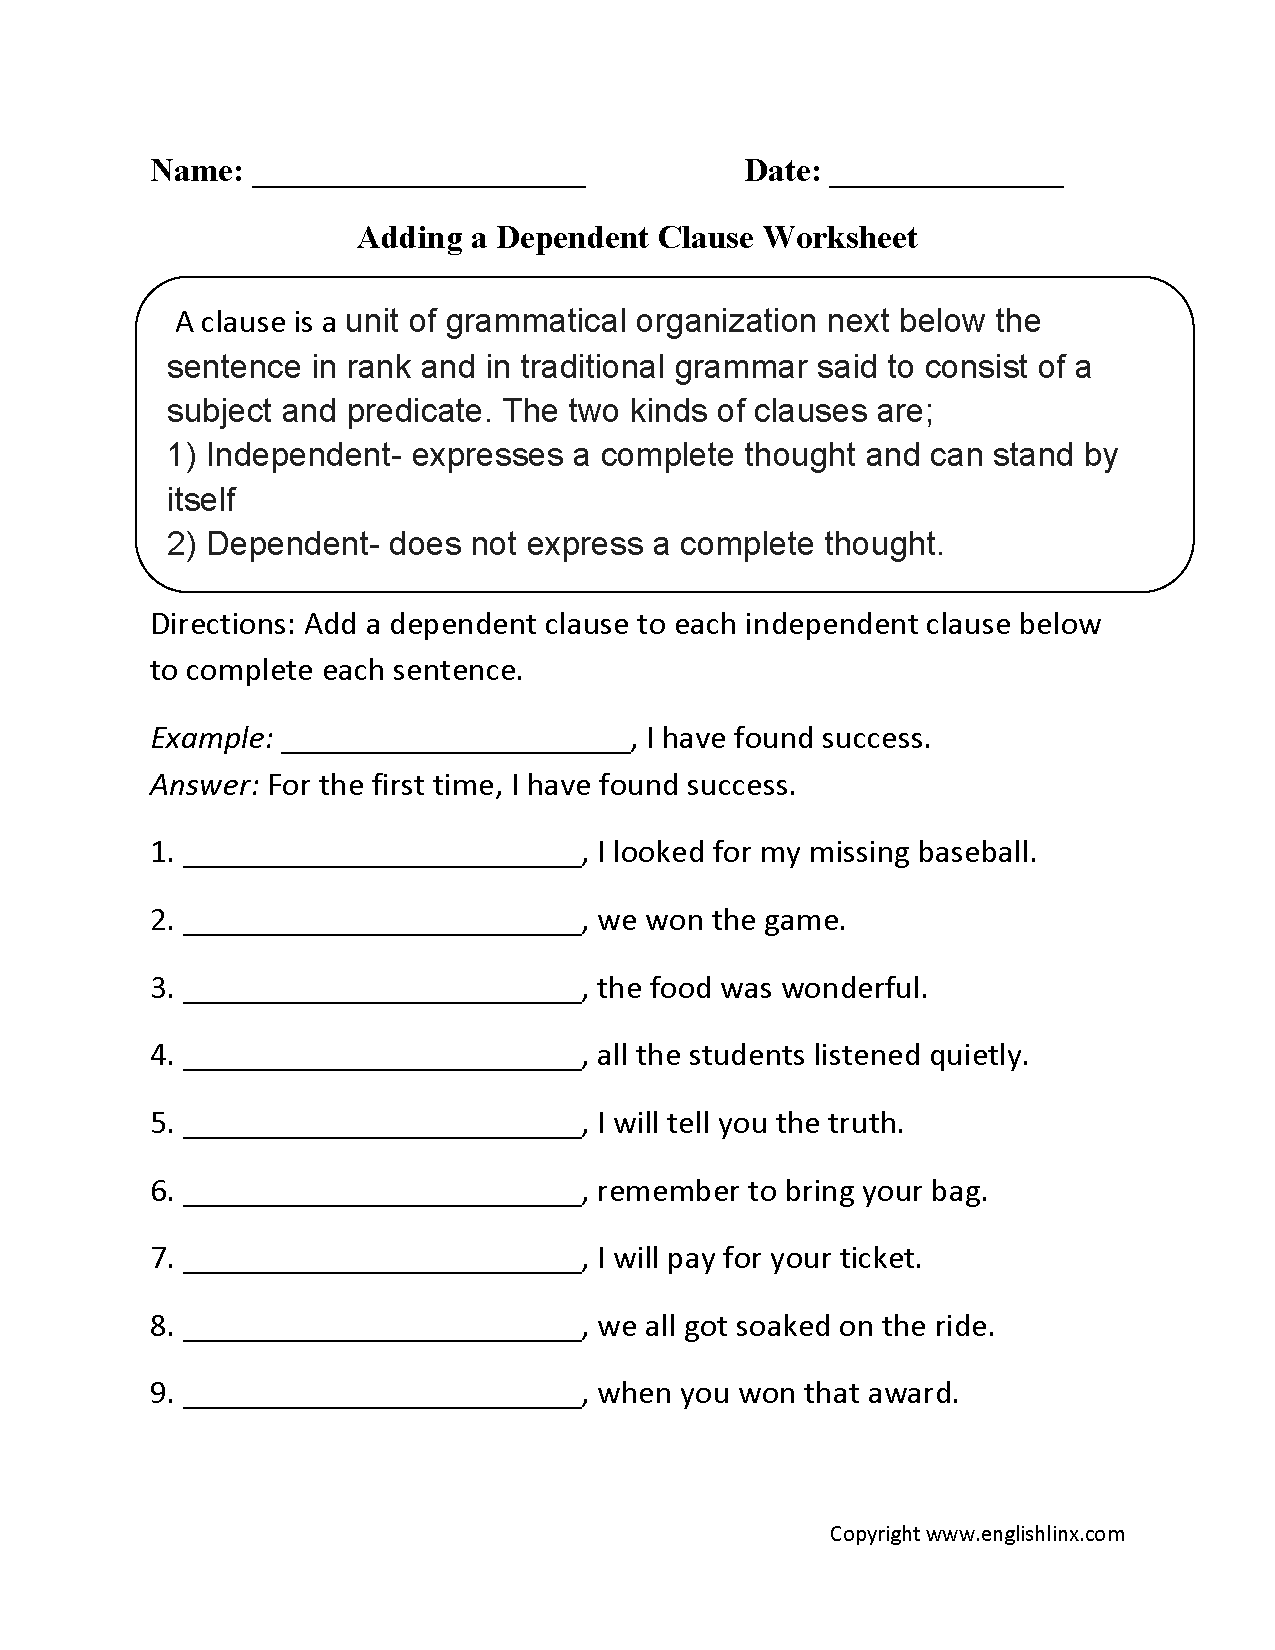 Free Worksheet Independent And Dependent Clauses Worksheets englishlinx com clauses worksheets worksheets